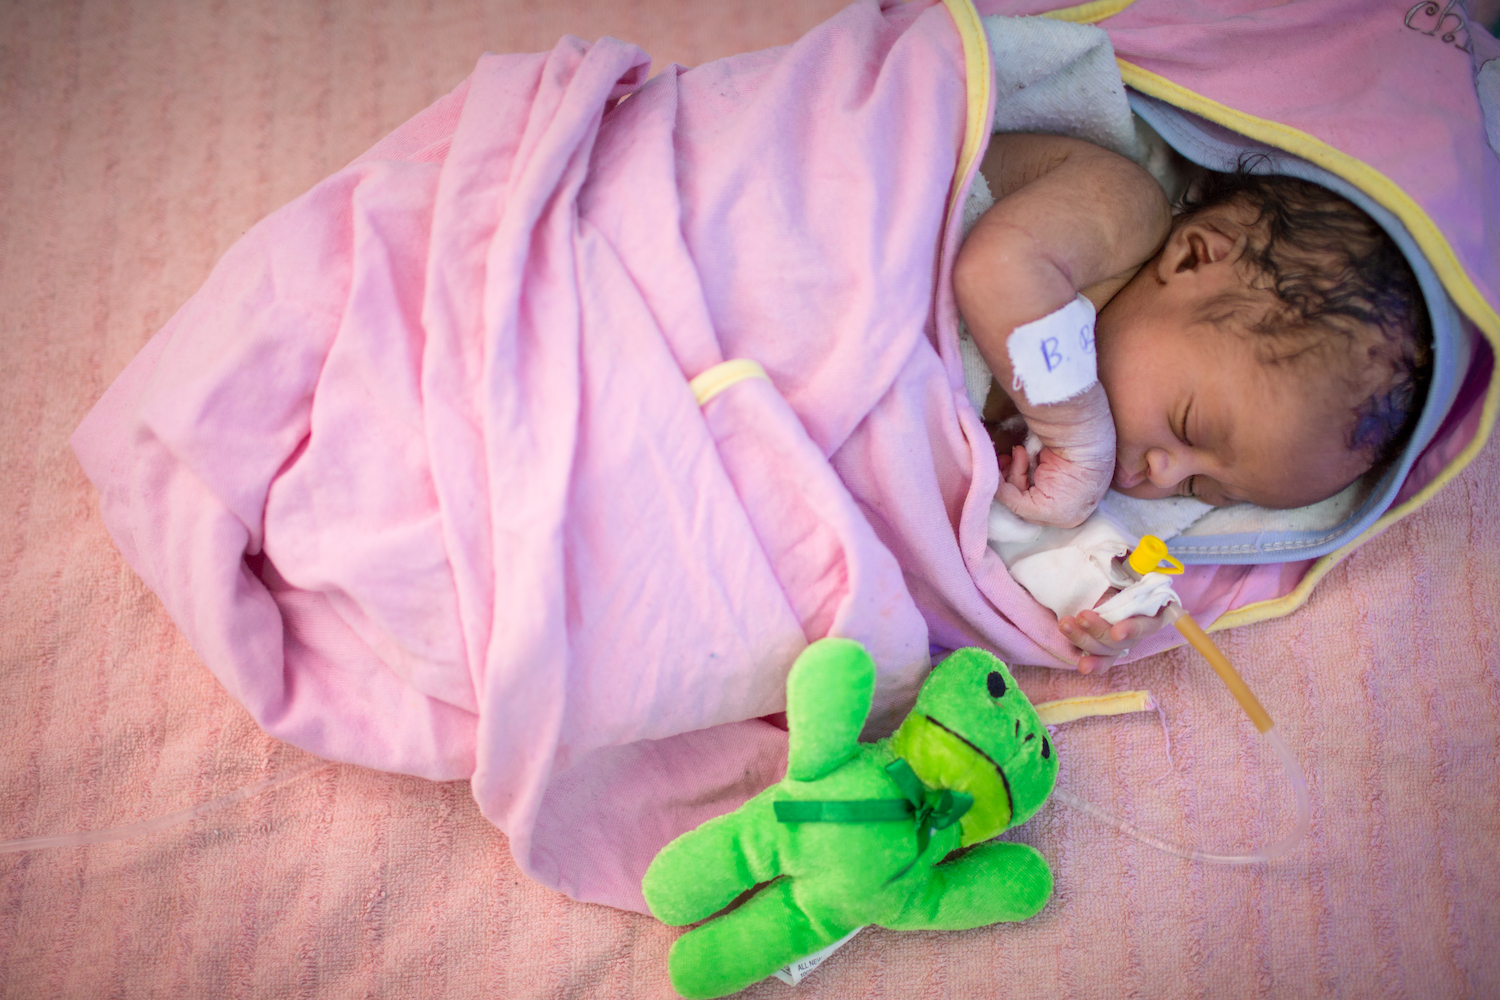 A newborn infant receives specialised care at the UNICEF